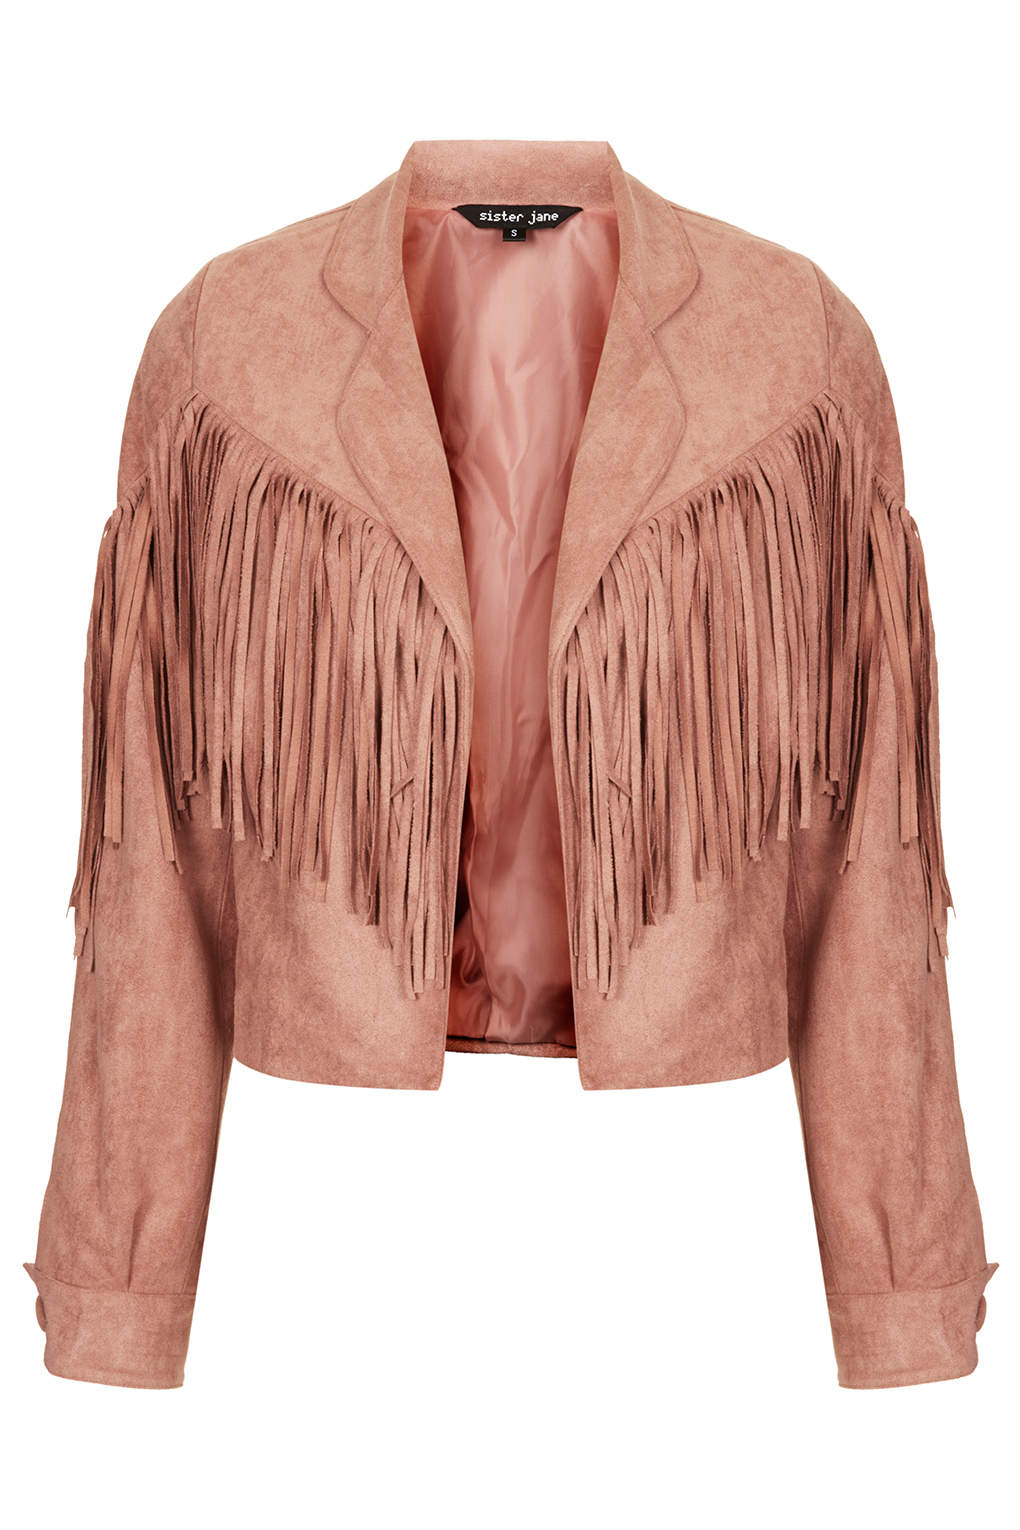 **Suede Fringe Jacket by Sister Jane